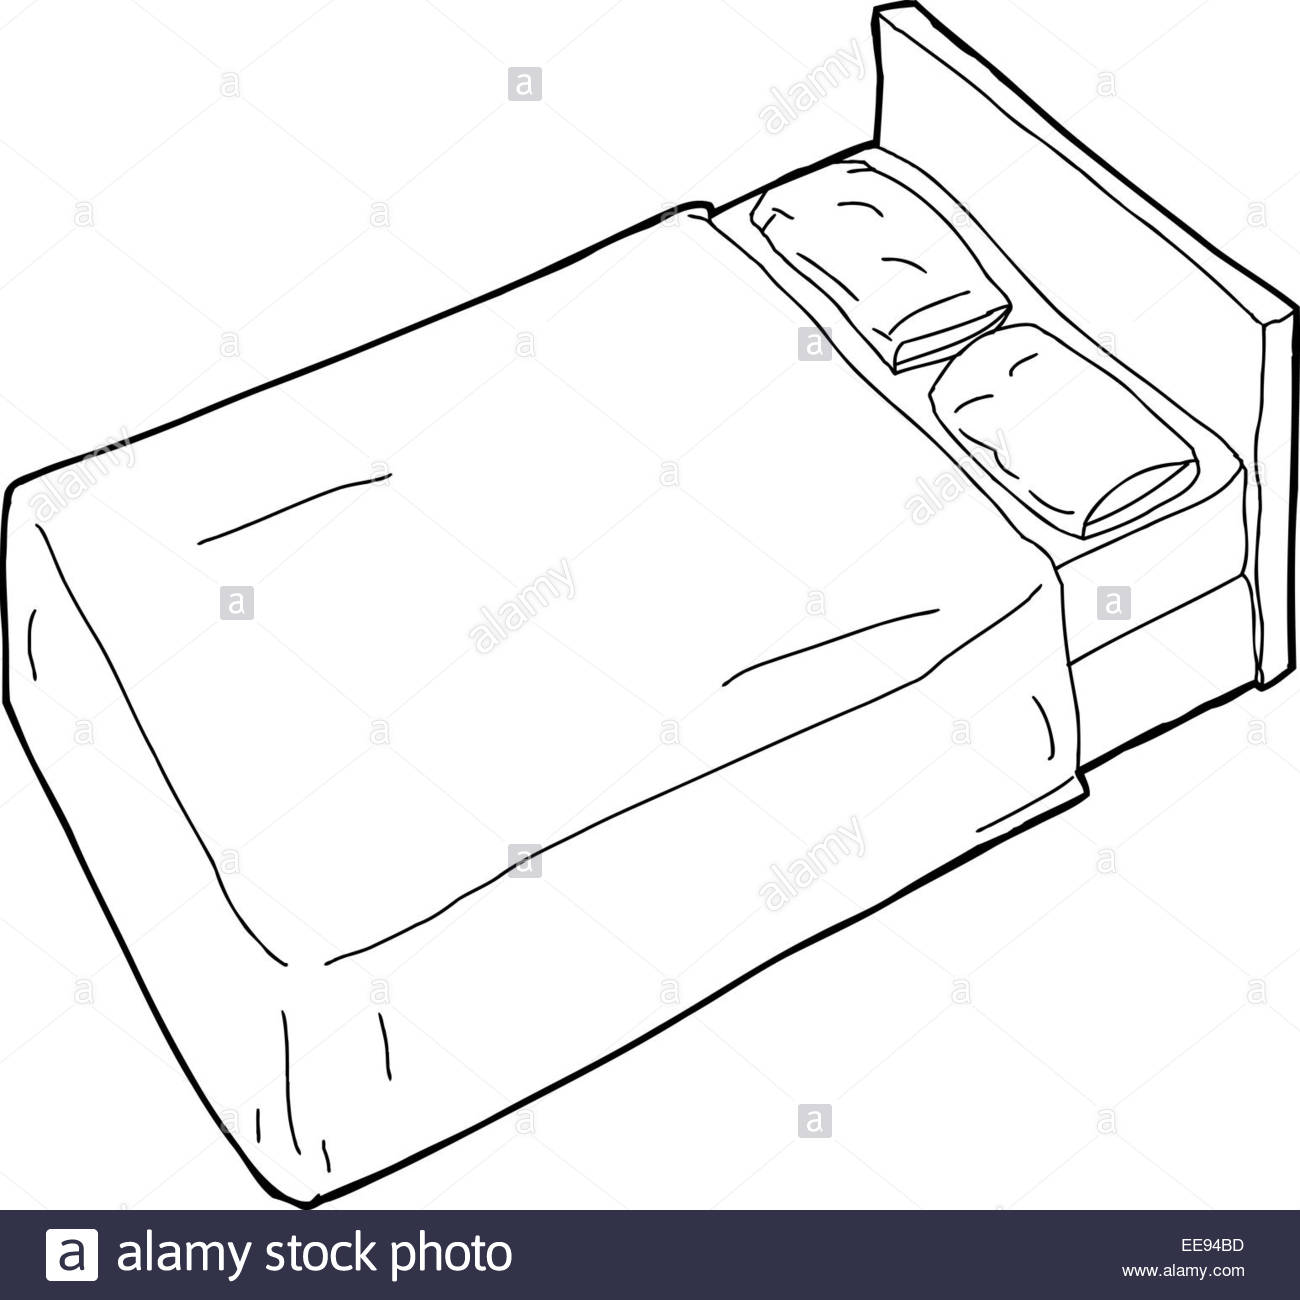 mattress drawing. 1300x1300 Single Hand Drawn Cartoon Bed With Pillow Outline Stock Photo Mattress Drawing G